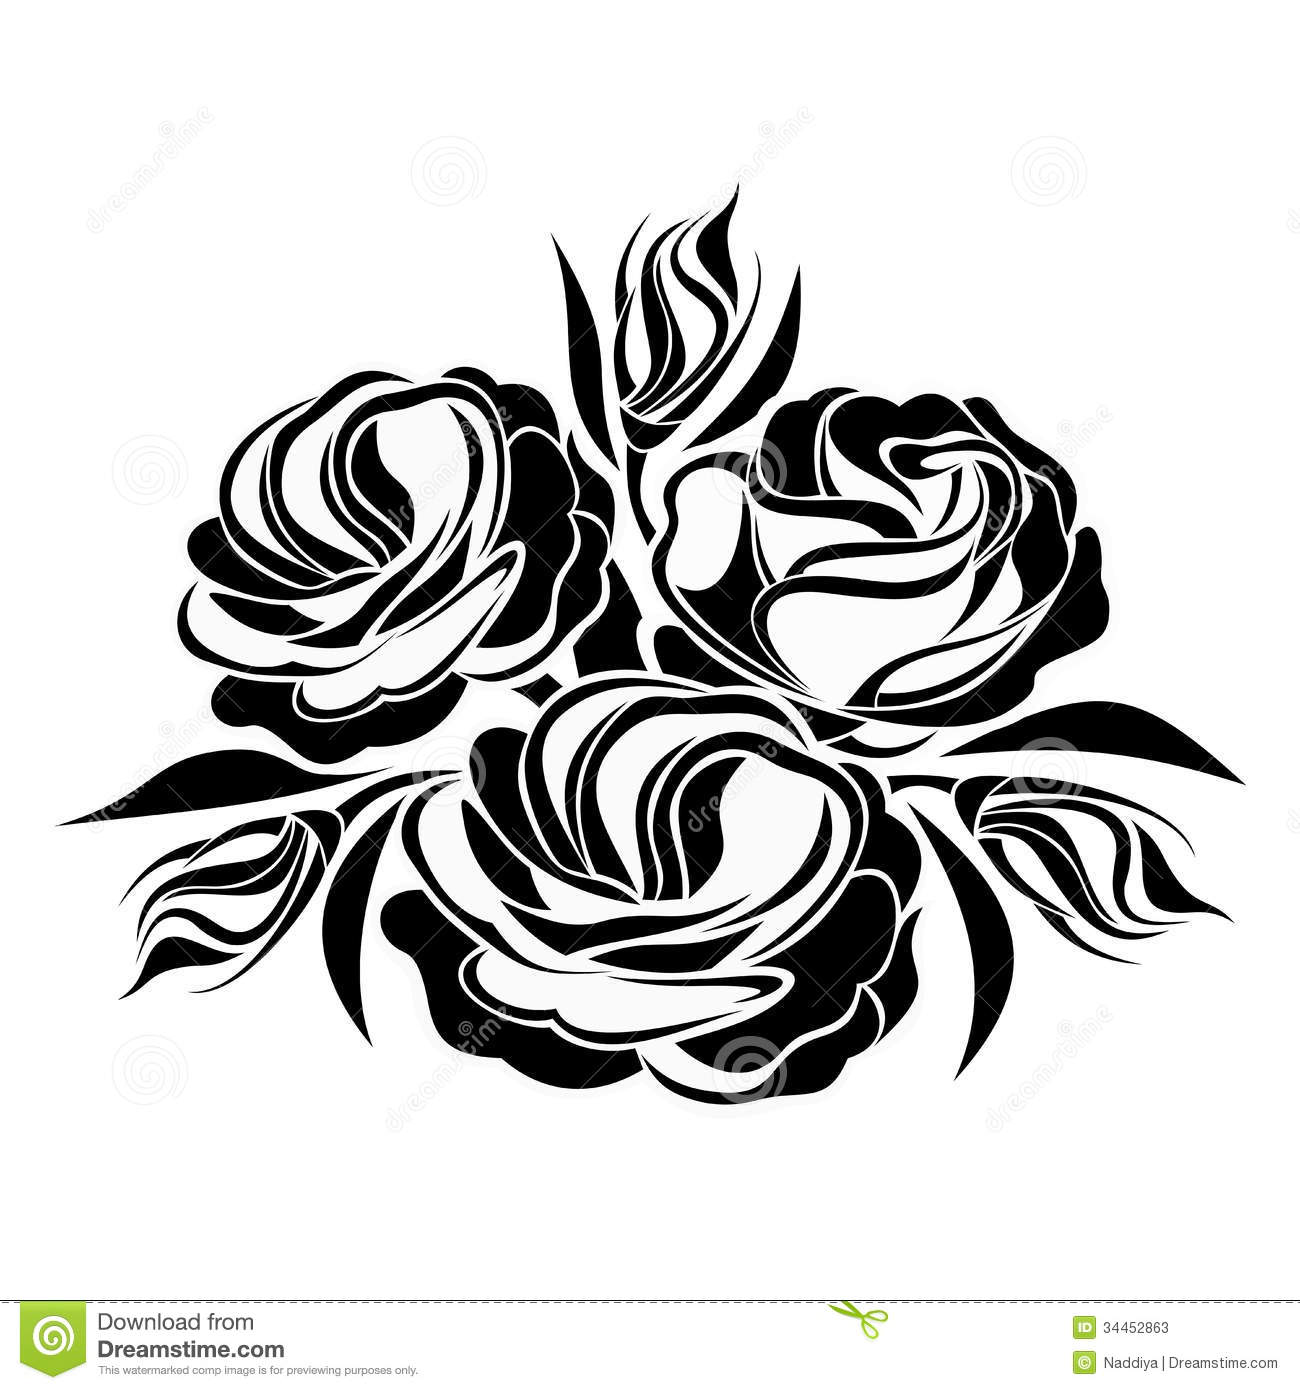 Black Flower Silhouette Stock Vector Illustration Of: Black Silhouette Of Lisianthus Flowers. Stock Photos